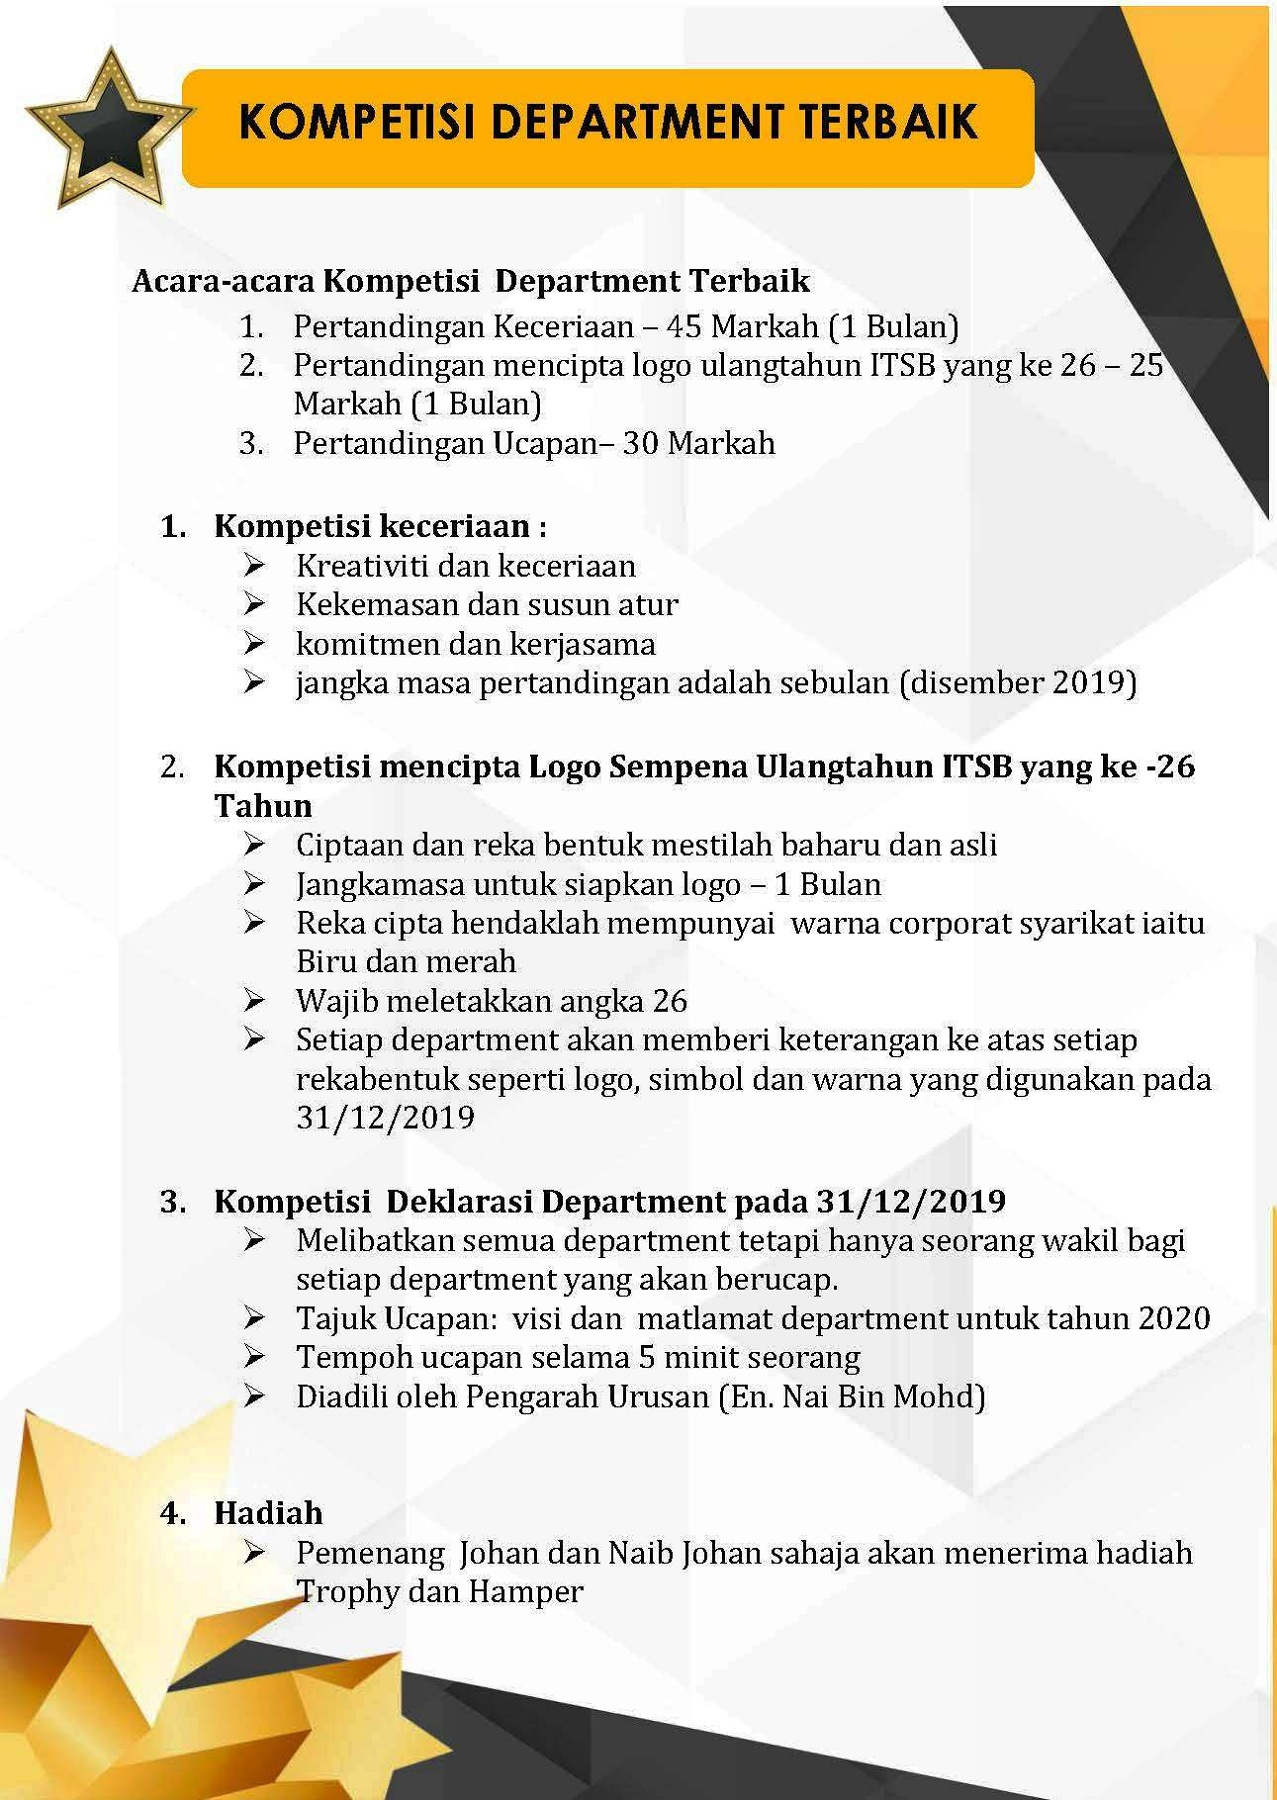 Kompetisi Department Terbaik Pages 1